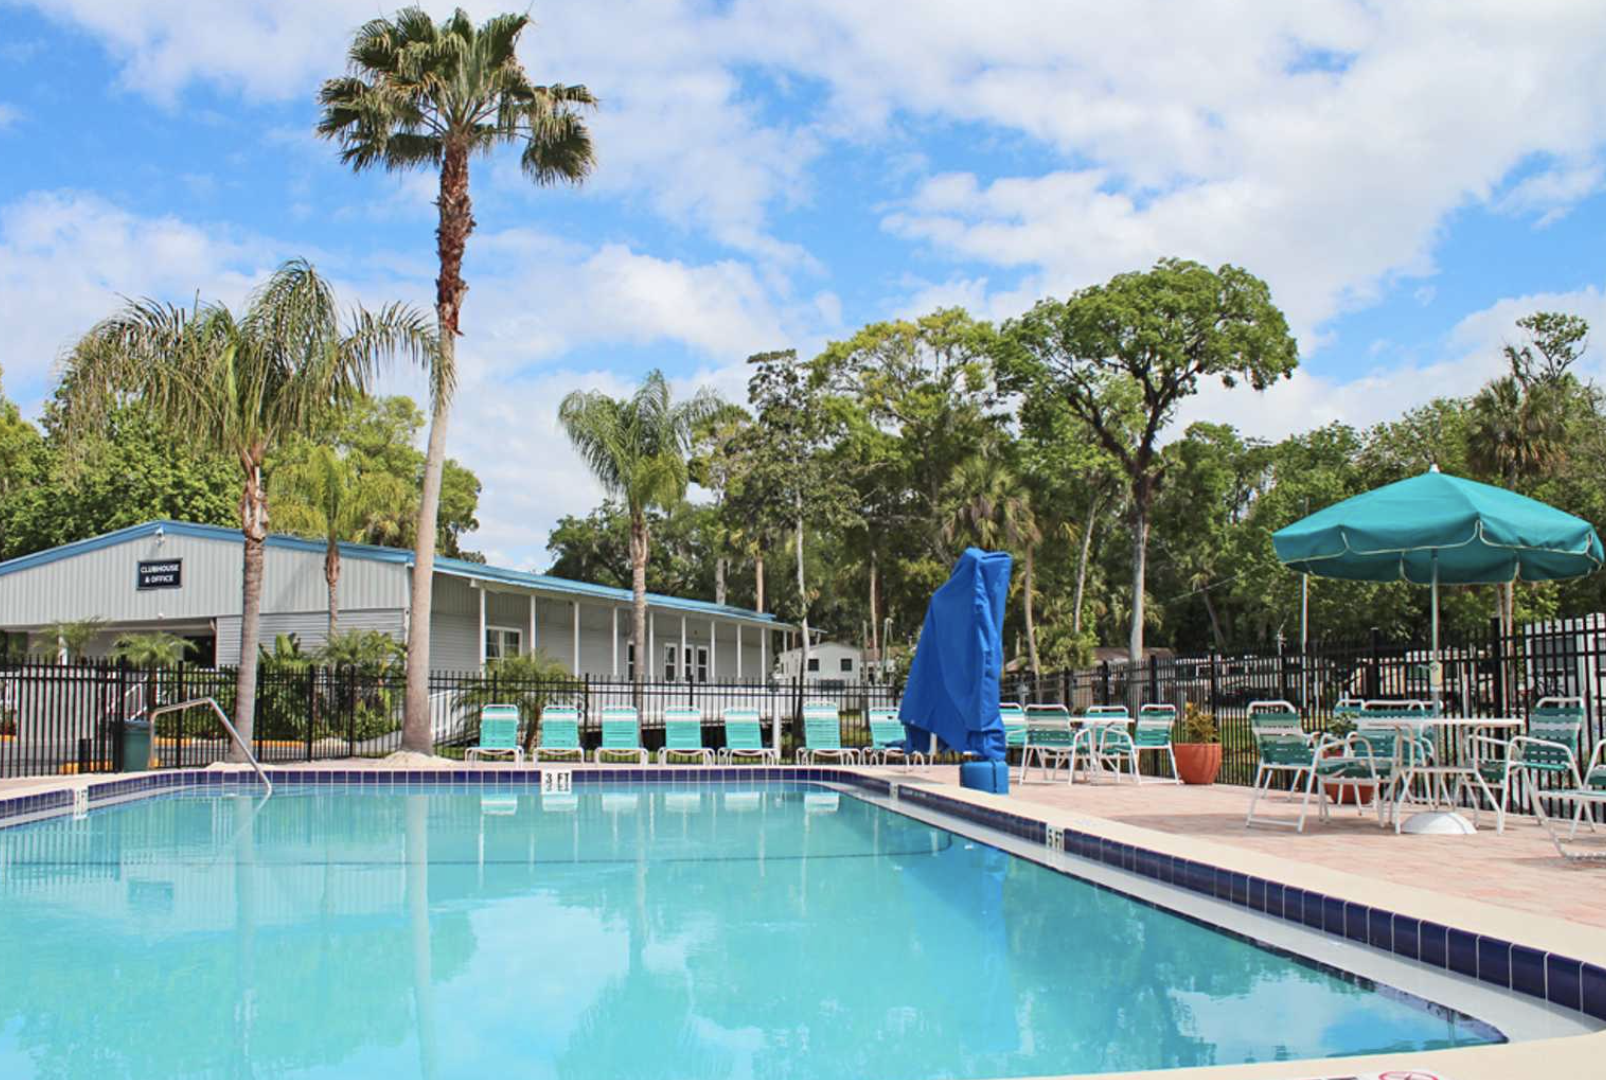 Pool area with blue chairs and palm trees in the background